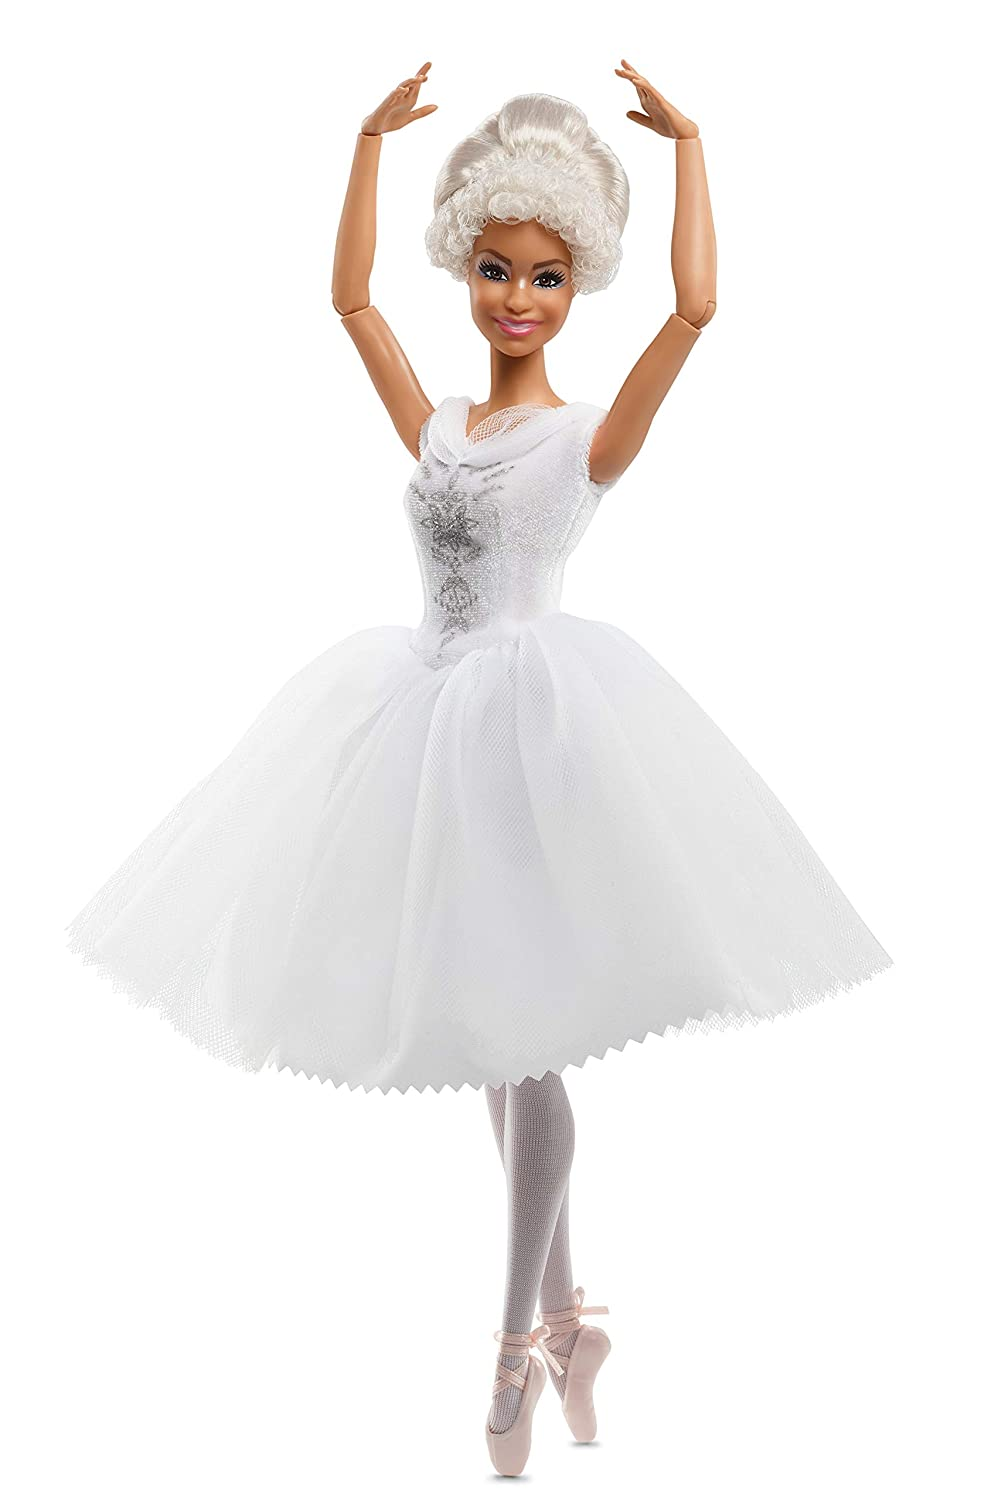 Disney The Nutcracker and the Four Realms Ballerina of the Realms Doll